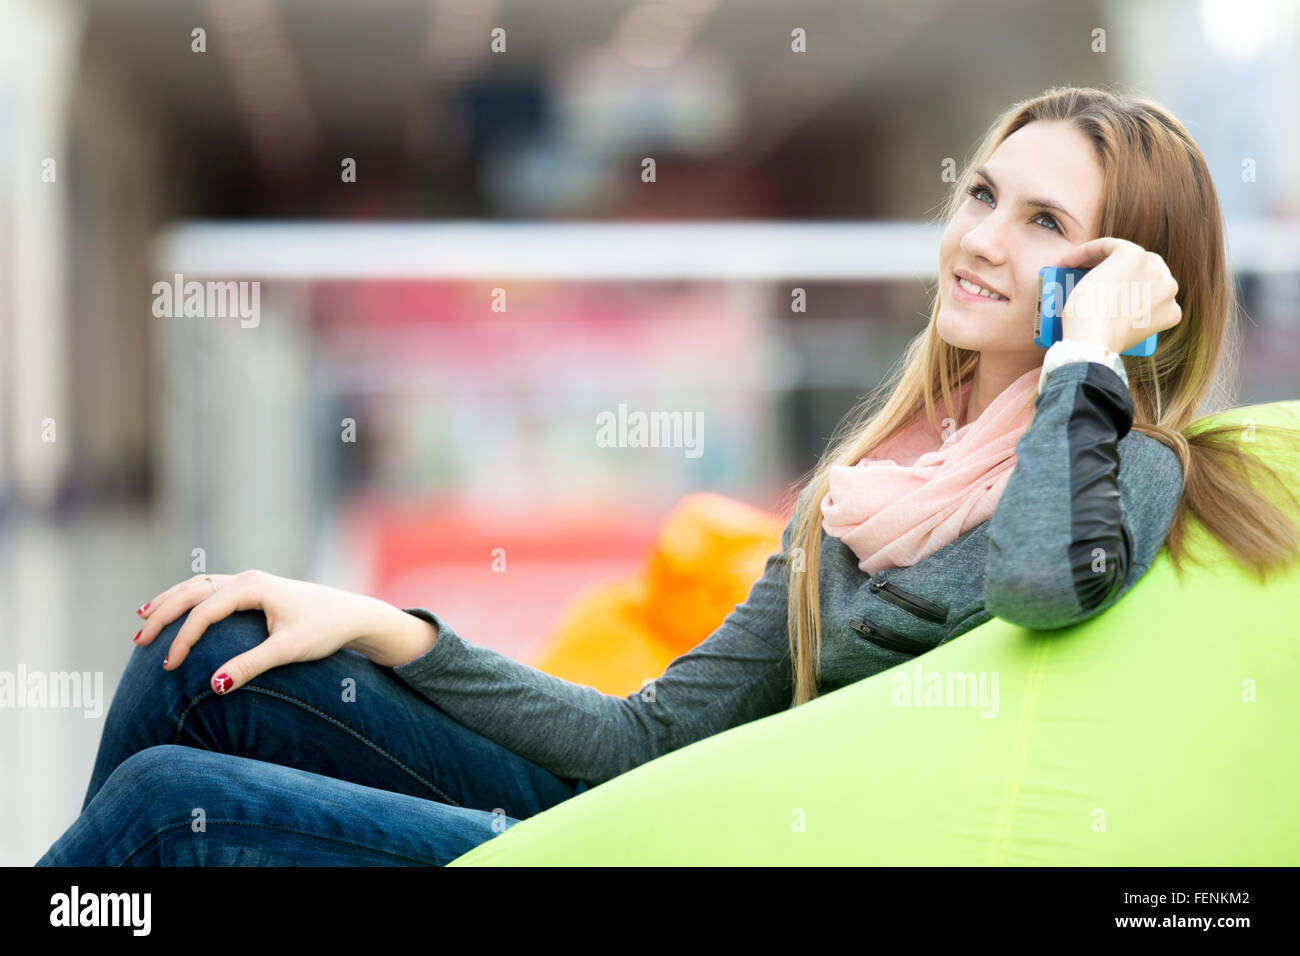 Dreamily smiling young woman in casual style clothes sitting on bean bag in office or shopping center, leisure area - Stock Image